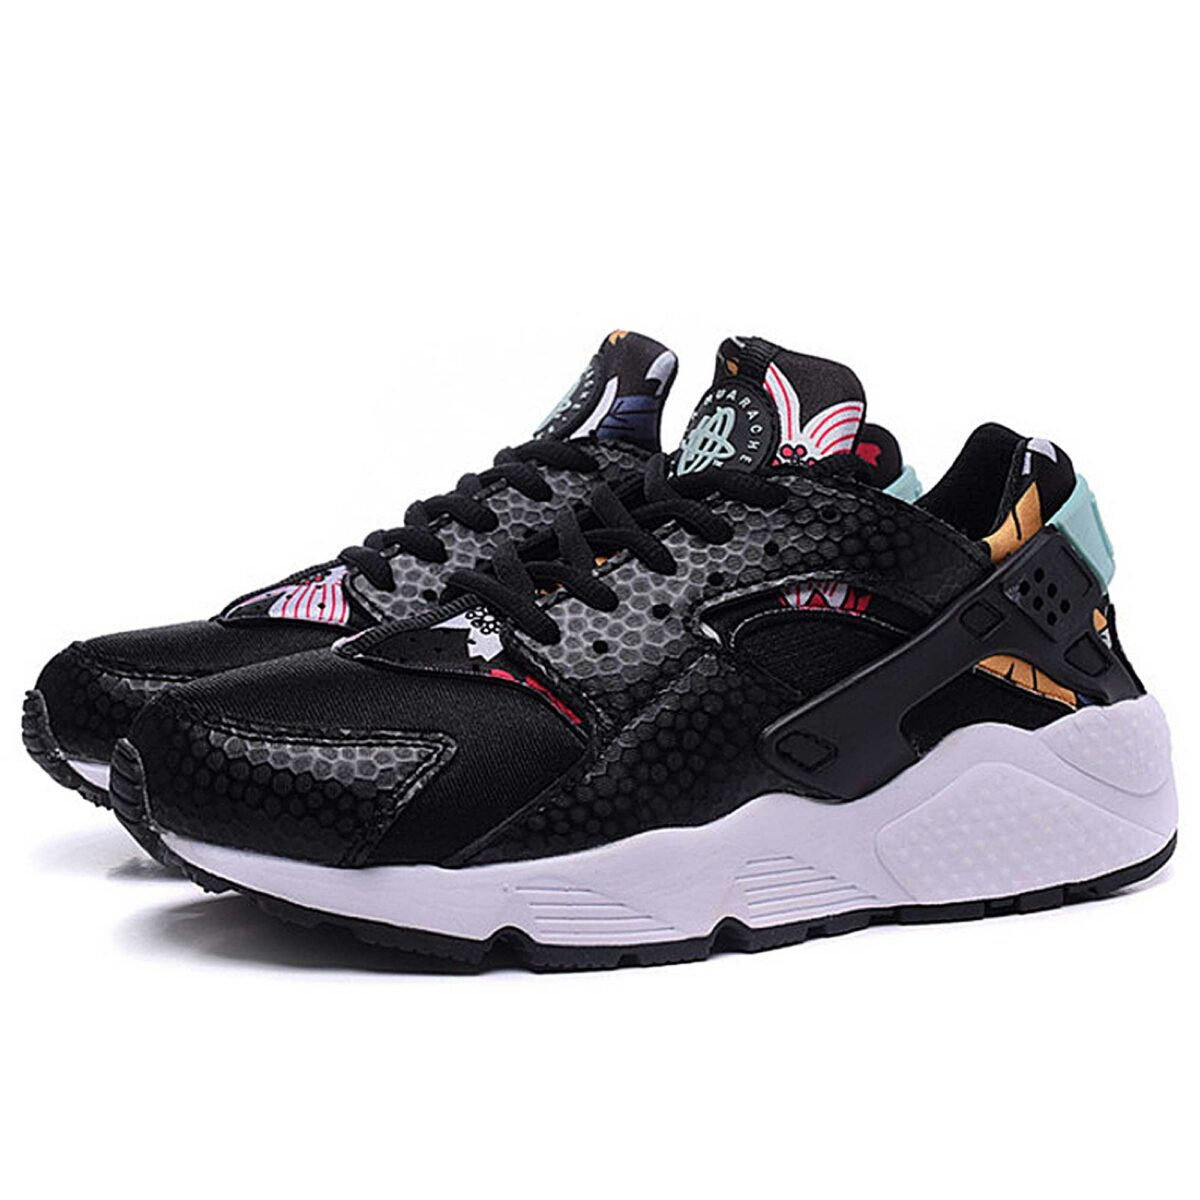 nike air huarache black artisan 725076_001 купить